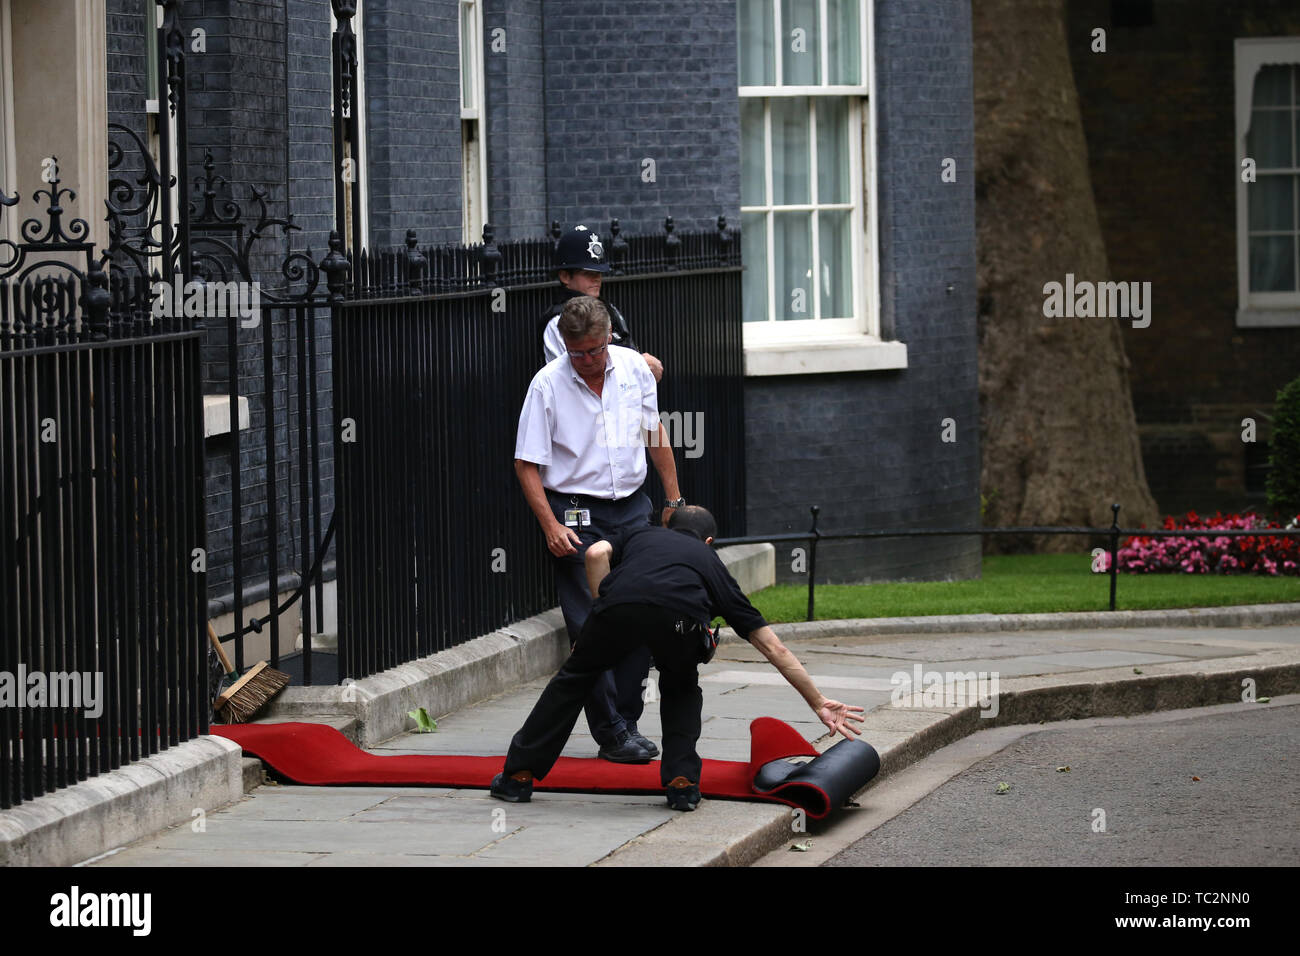 London, UK. 04th June, 2019. Two men roll out the red carpet before Donald Trump (President of the United States), and First Lady Melania Trump, are greeted in Downing Street by Theresa May (Prime Minister of the UK), and her husband Philip May. The President met The Prime Minister during his state visit to the UK. Donald Trump, State visit, Downing Street, London, UK on June 4, 2019. Credit: Paul Marriott/Alamy Live News Stock Photo